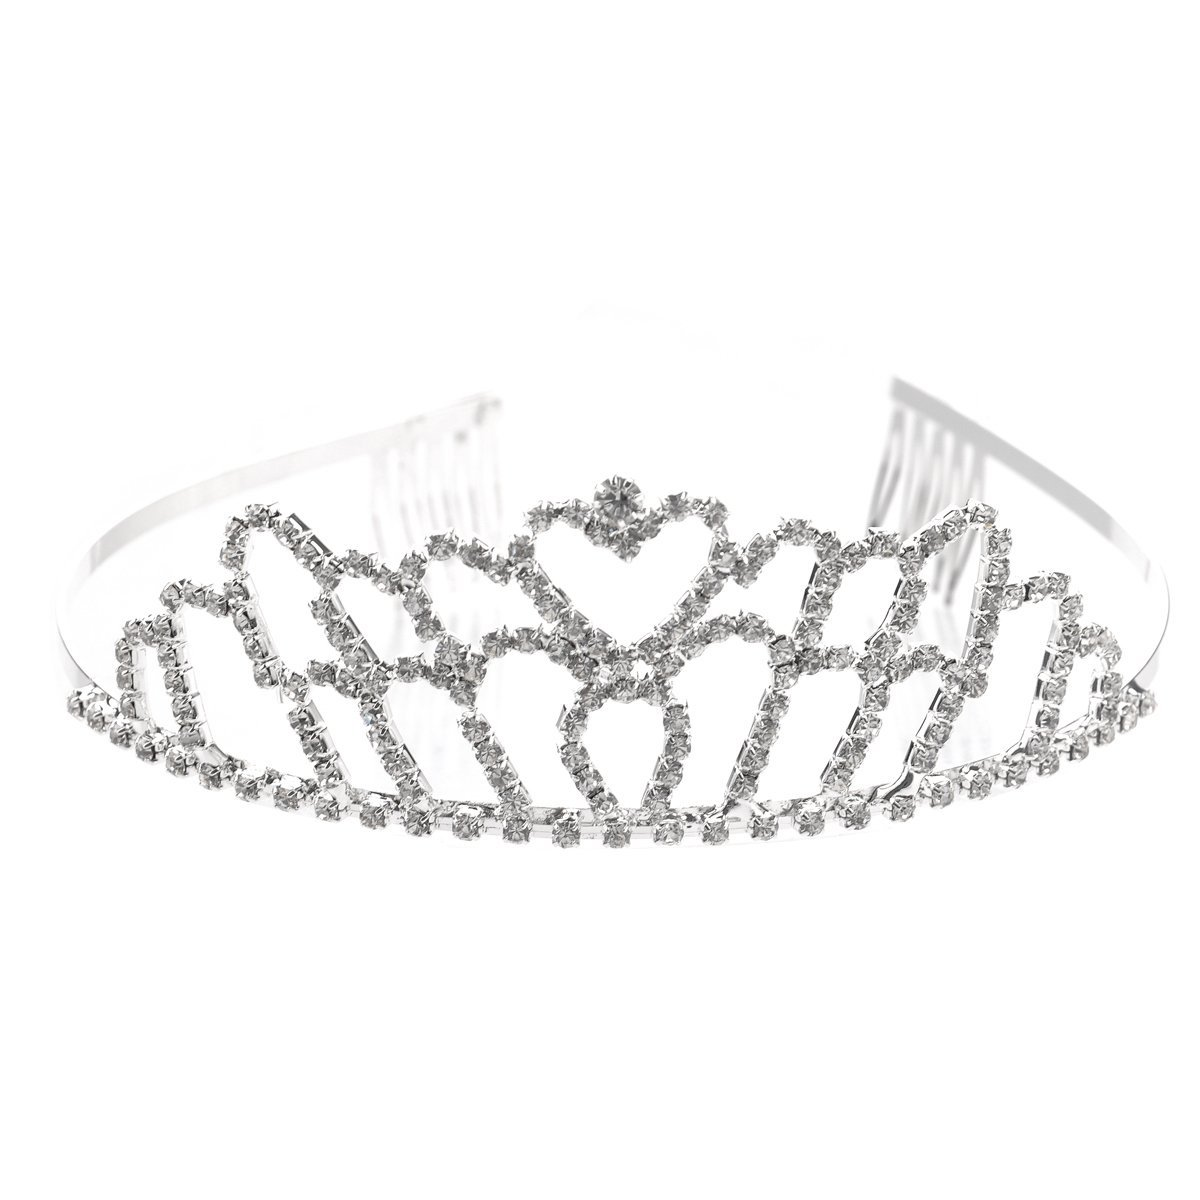 PIXNOR Wedding Bridal Crown Headband Prom Tiara Shining Crystal Rhinestones Hair Band (Silver)